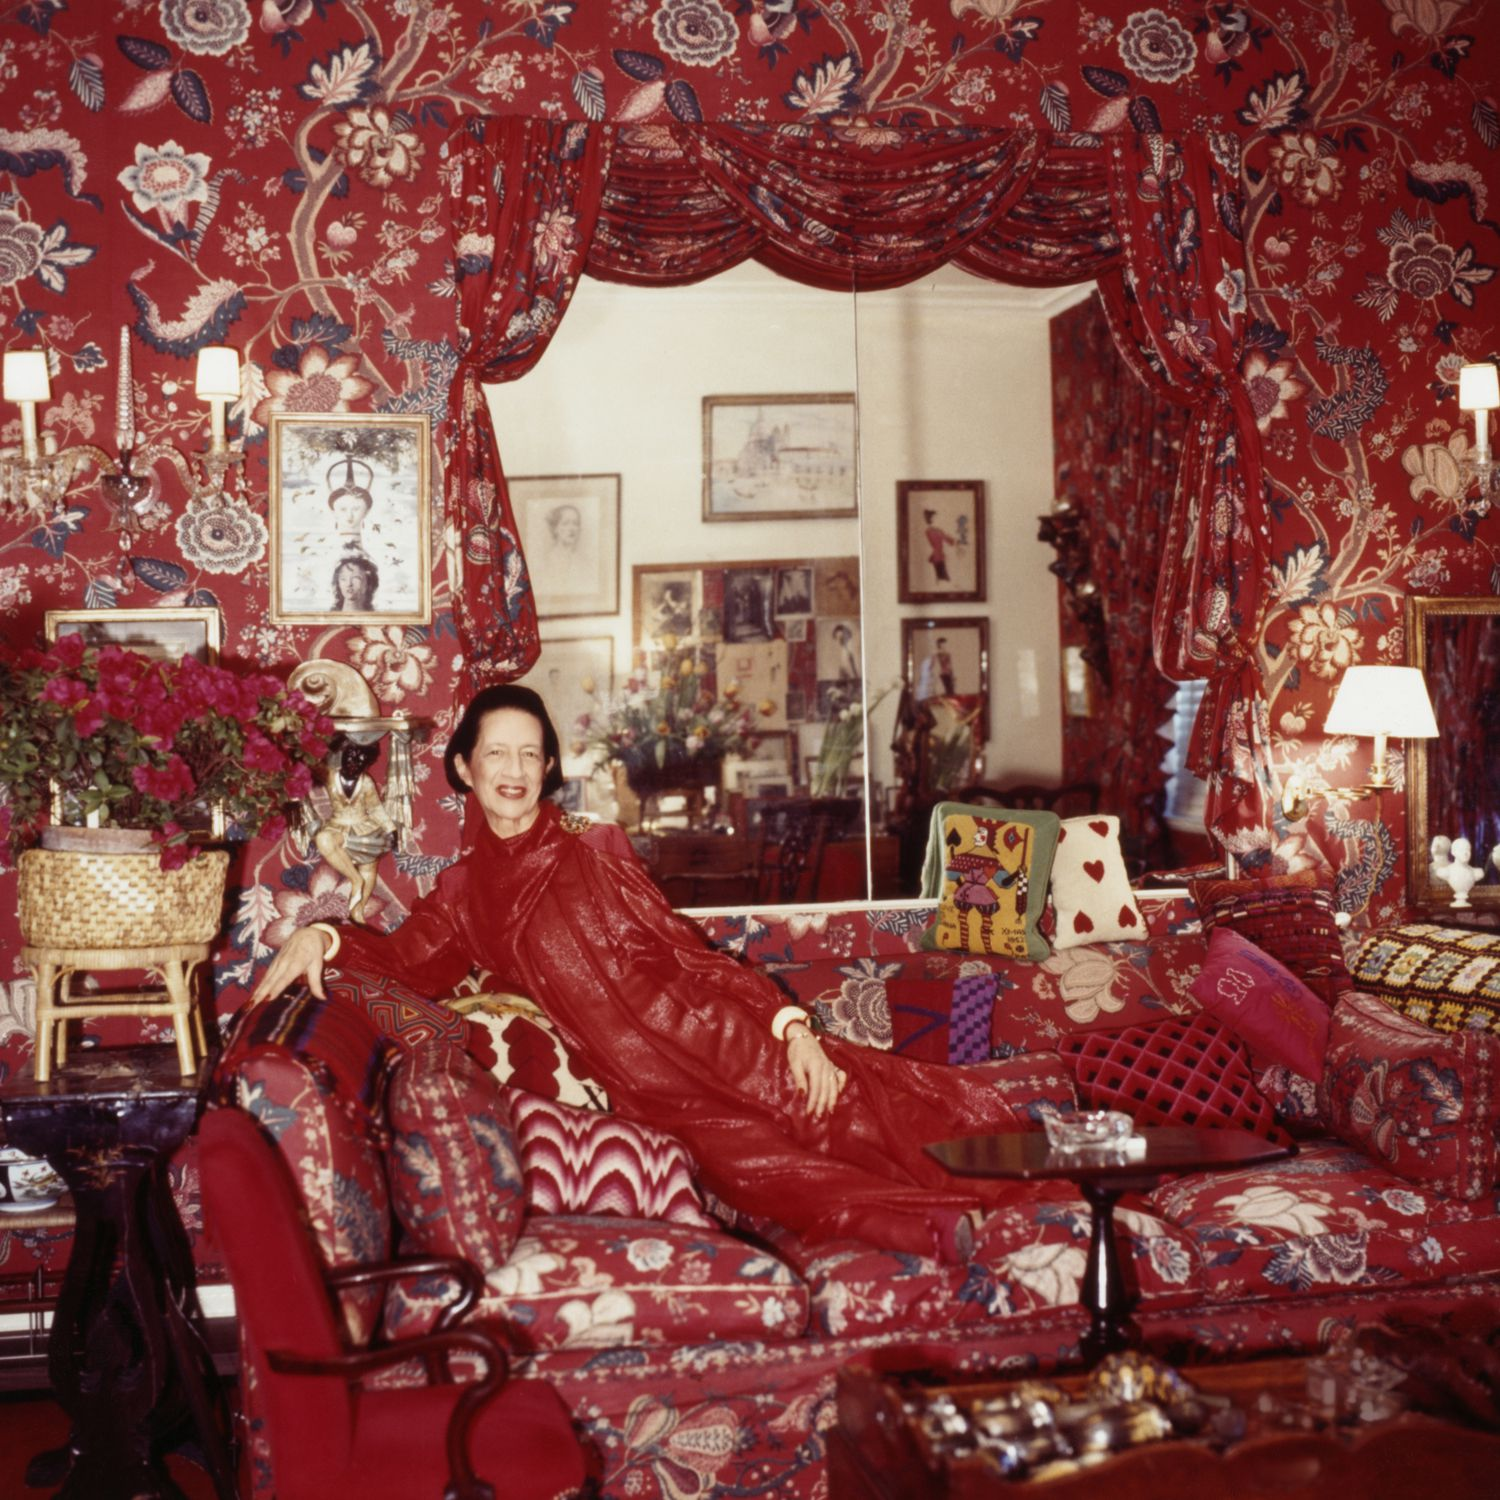 """Diana Vreeland in her living room, which she called """"A Garden in Hell,"""" by Horst P. Horst, 1979."""